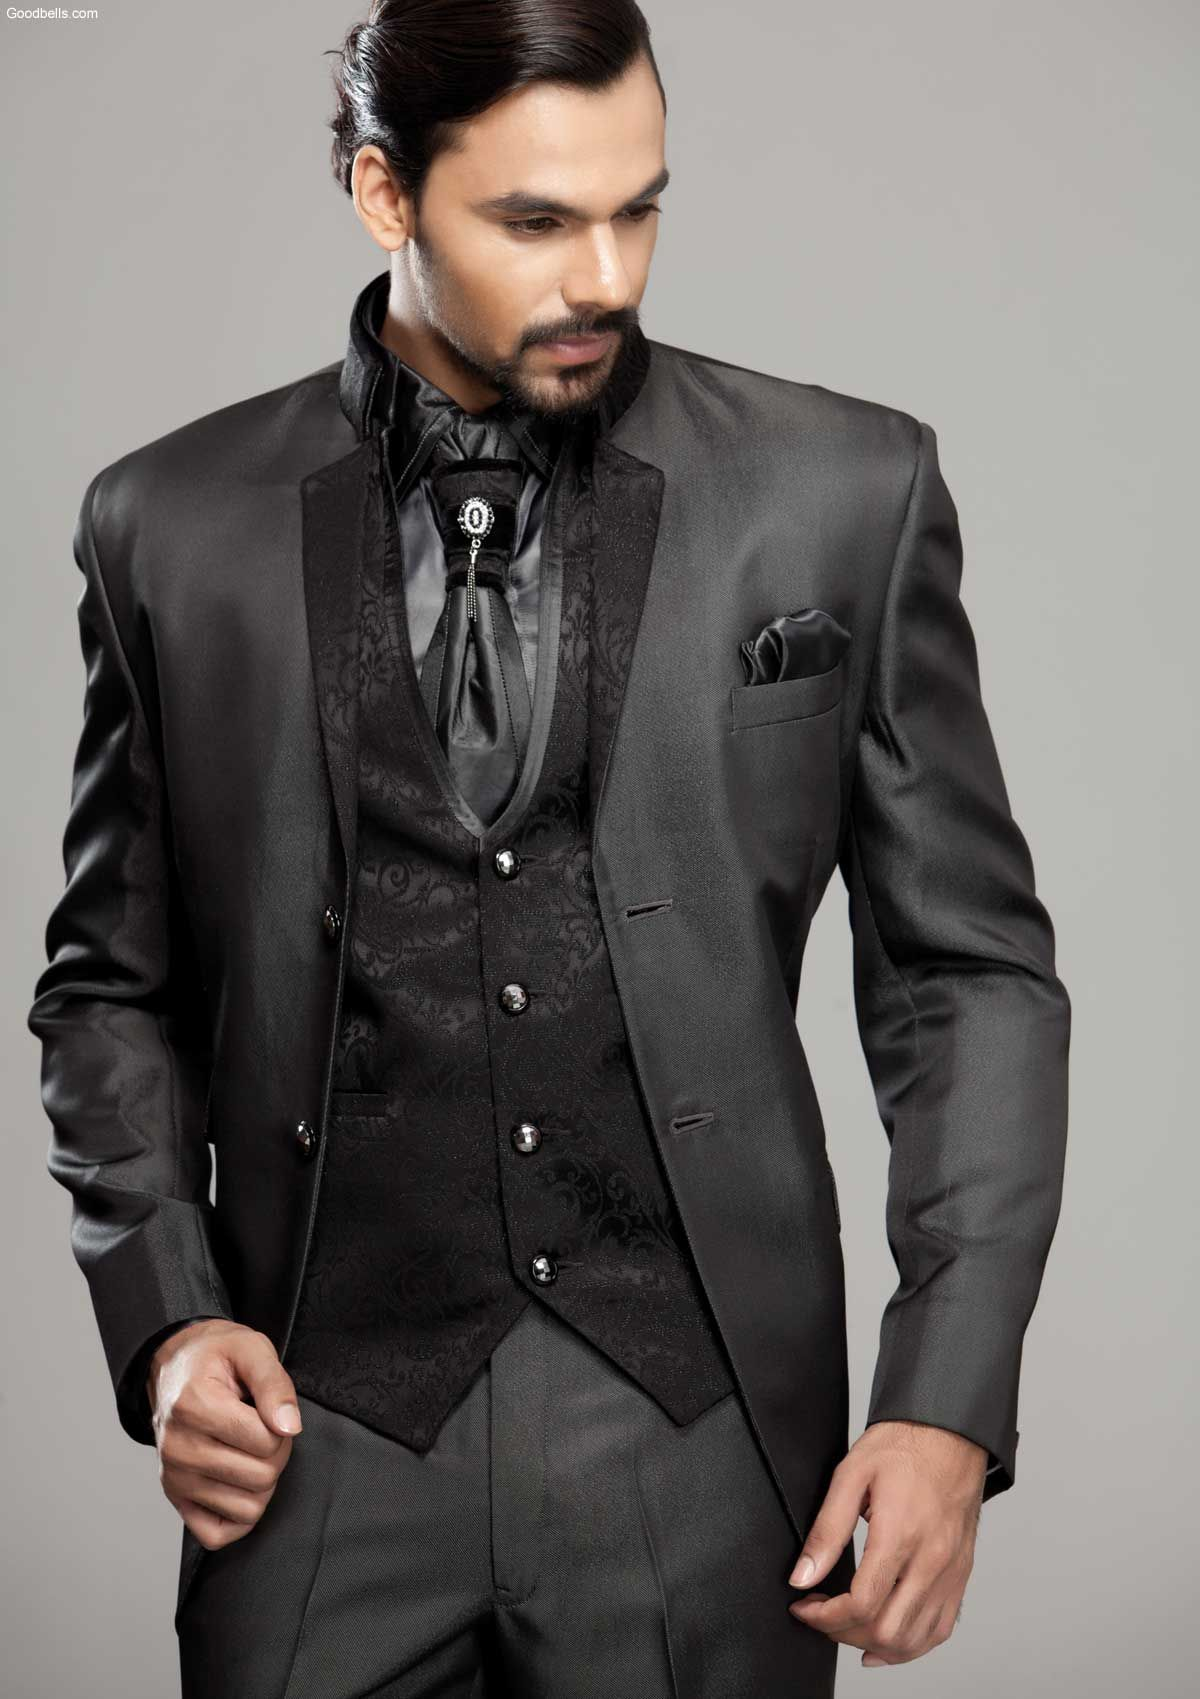 Most Stylish Three Piece Suit For Menswear Collection ...